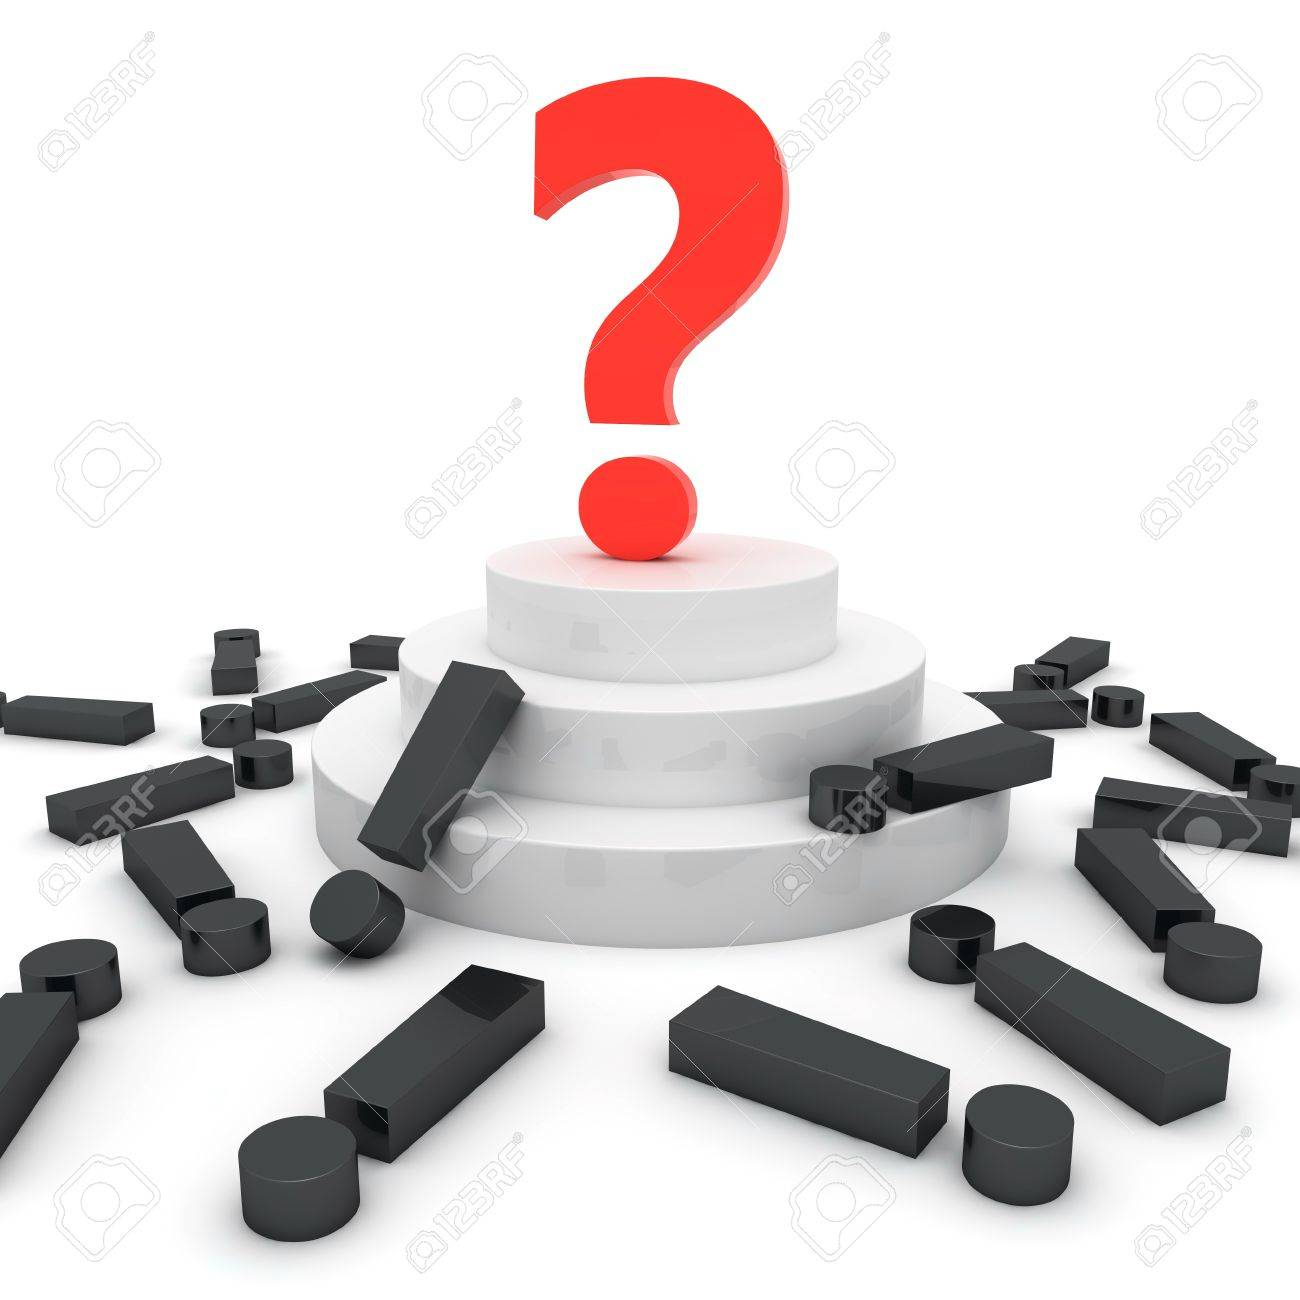 Big red question mark on the tribune over black exclamation marks Stock Photo - 9517805